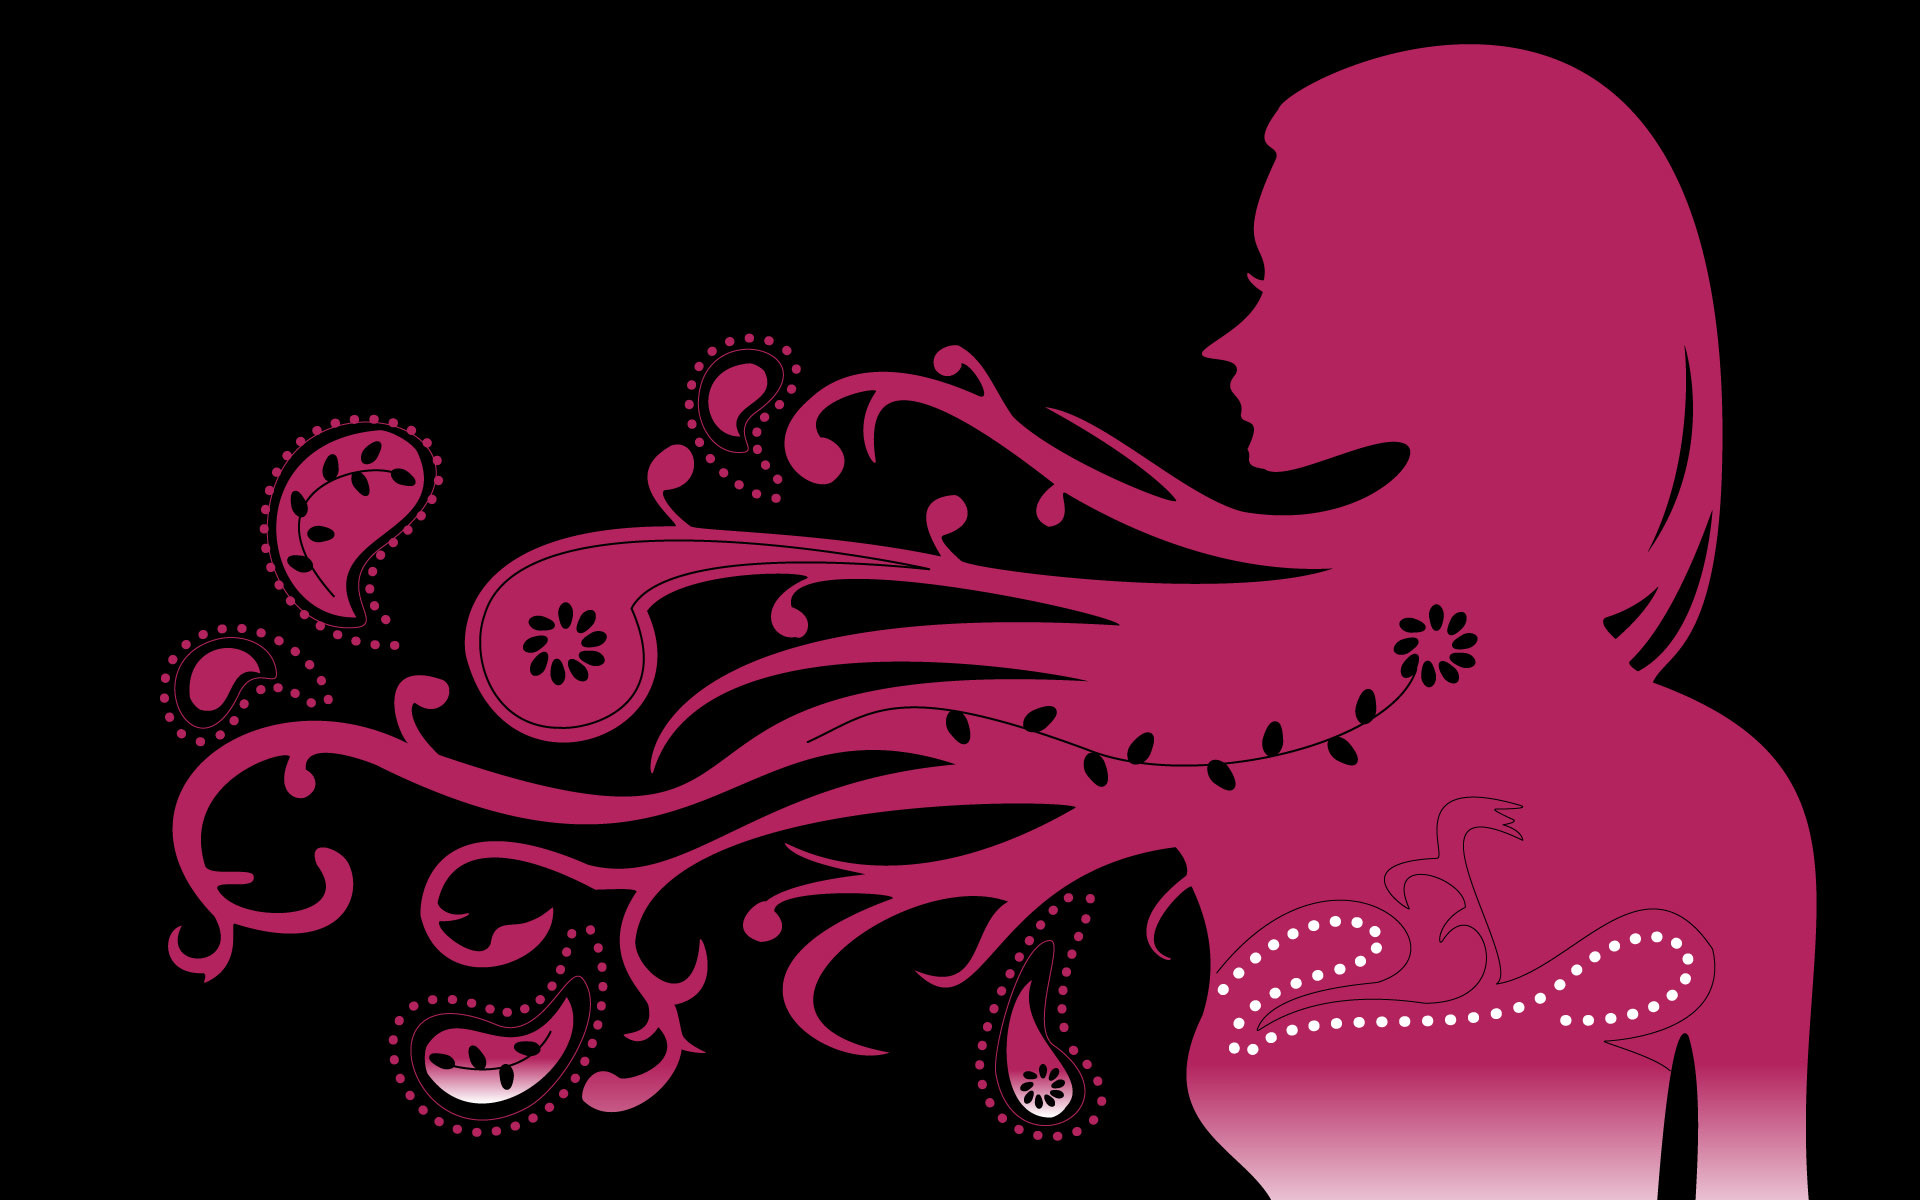 beauty abstract funky pink wallpaper #Abstract, #Beauty, #Cool, #Funky